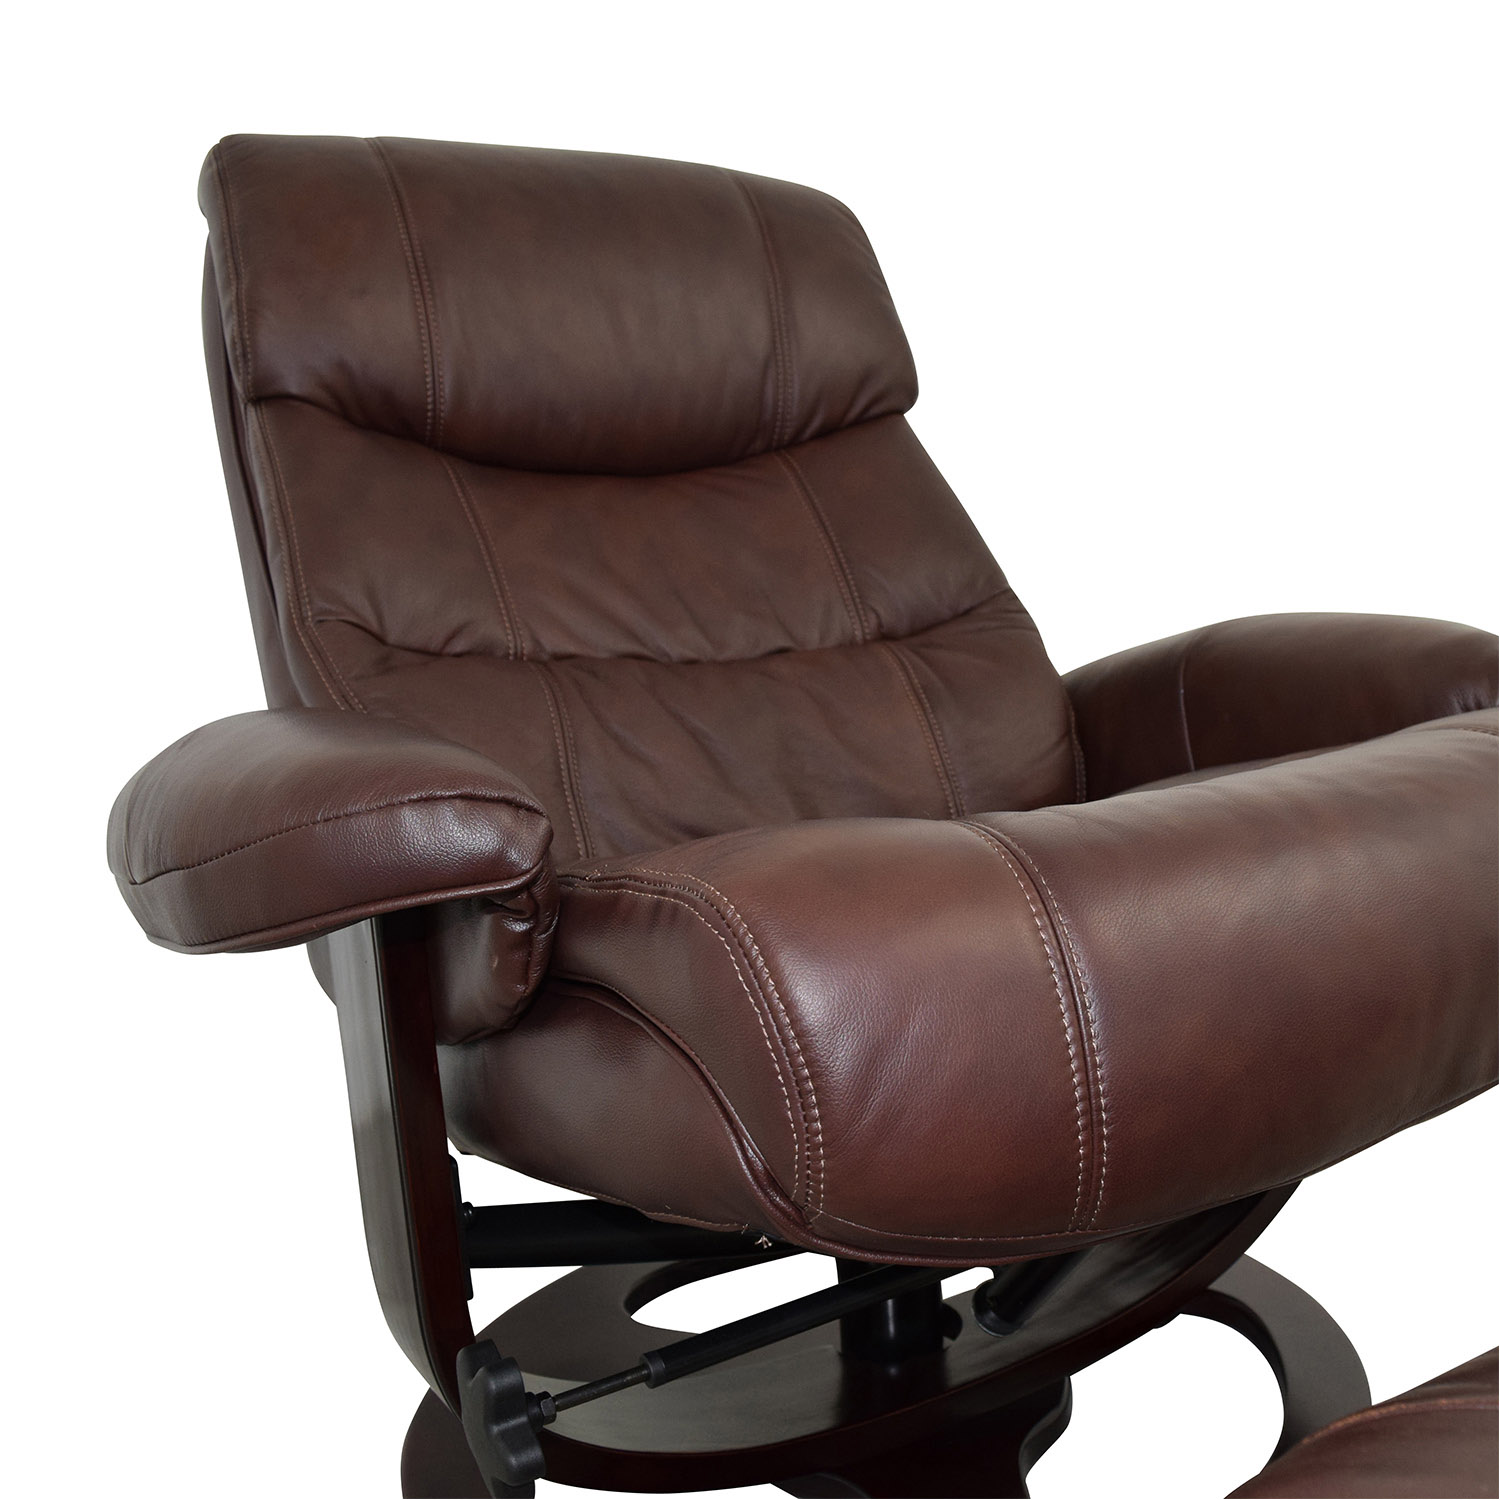 Macys Leather Chair 59 Off Macy 39s Macy 39s Aby Brown Leather Recliner Chair